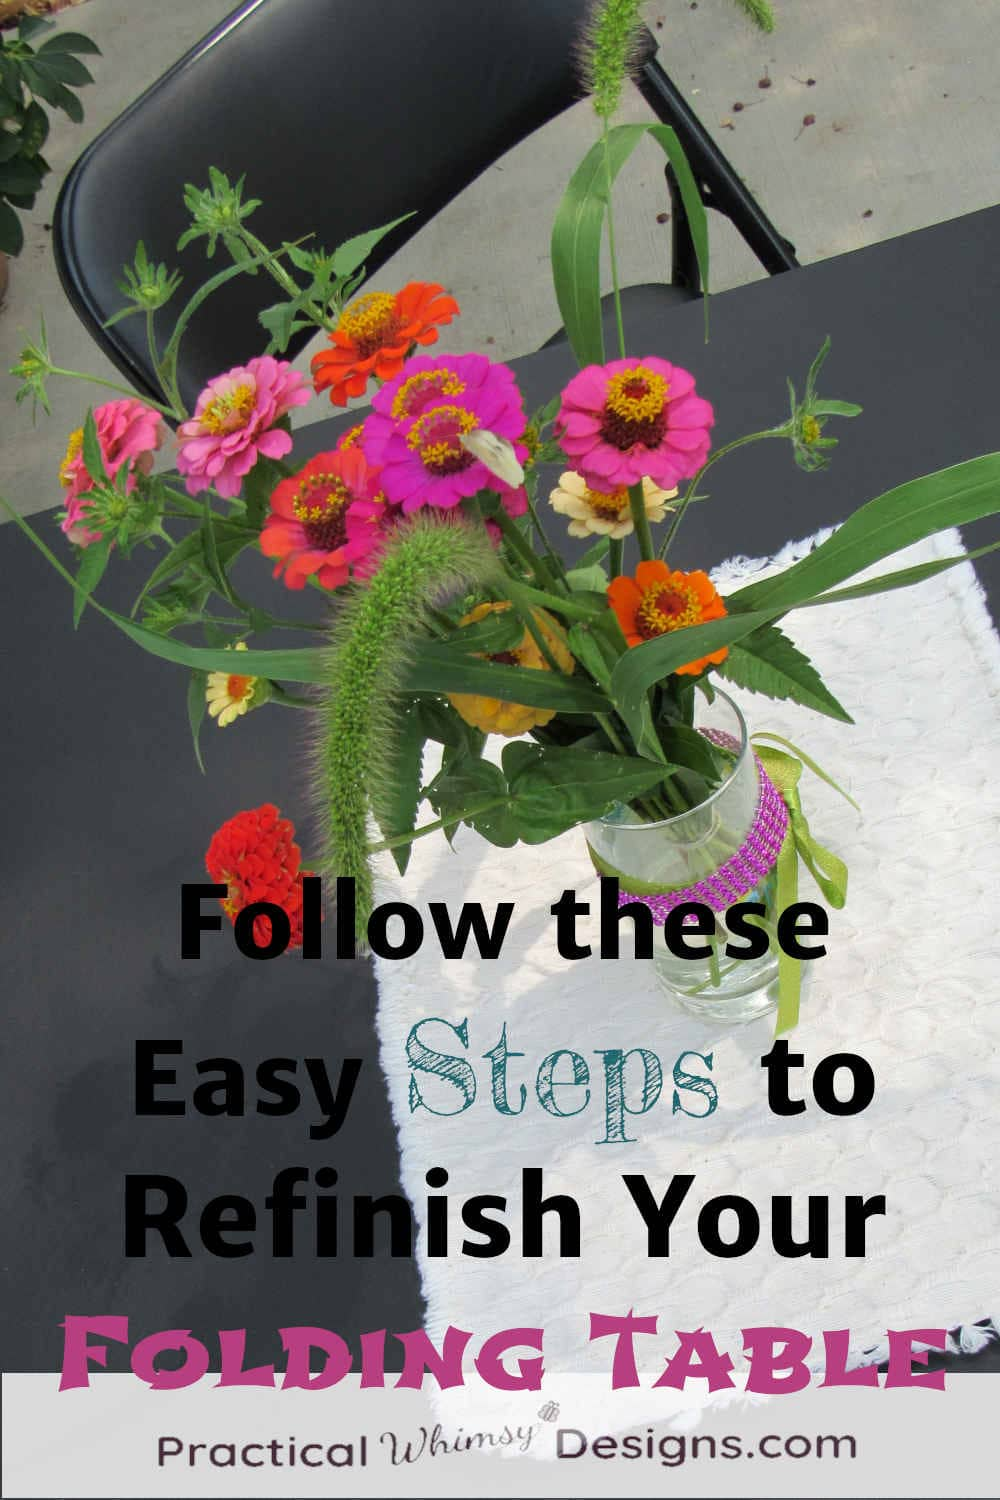 Follow These Easy Steps to Refinish Your Folding Table